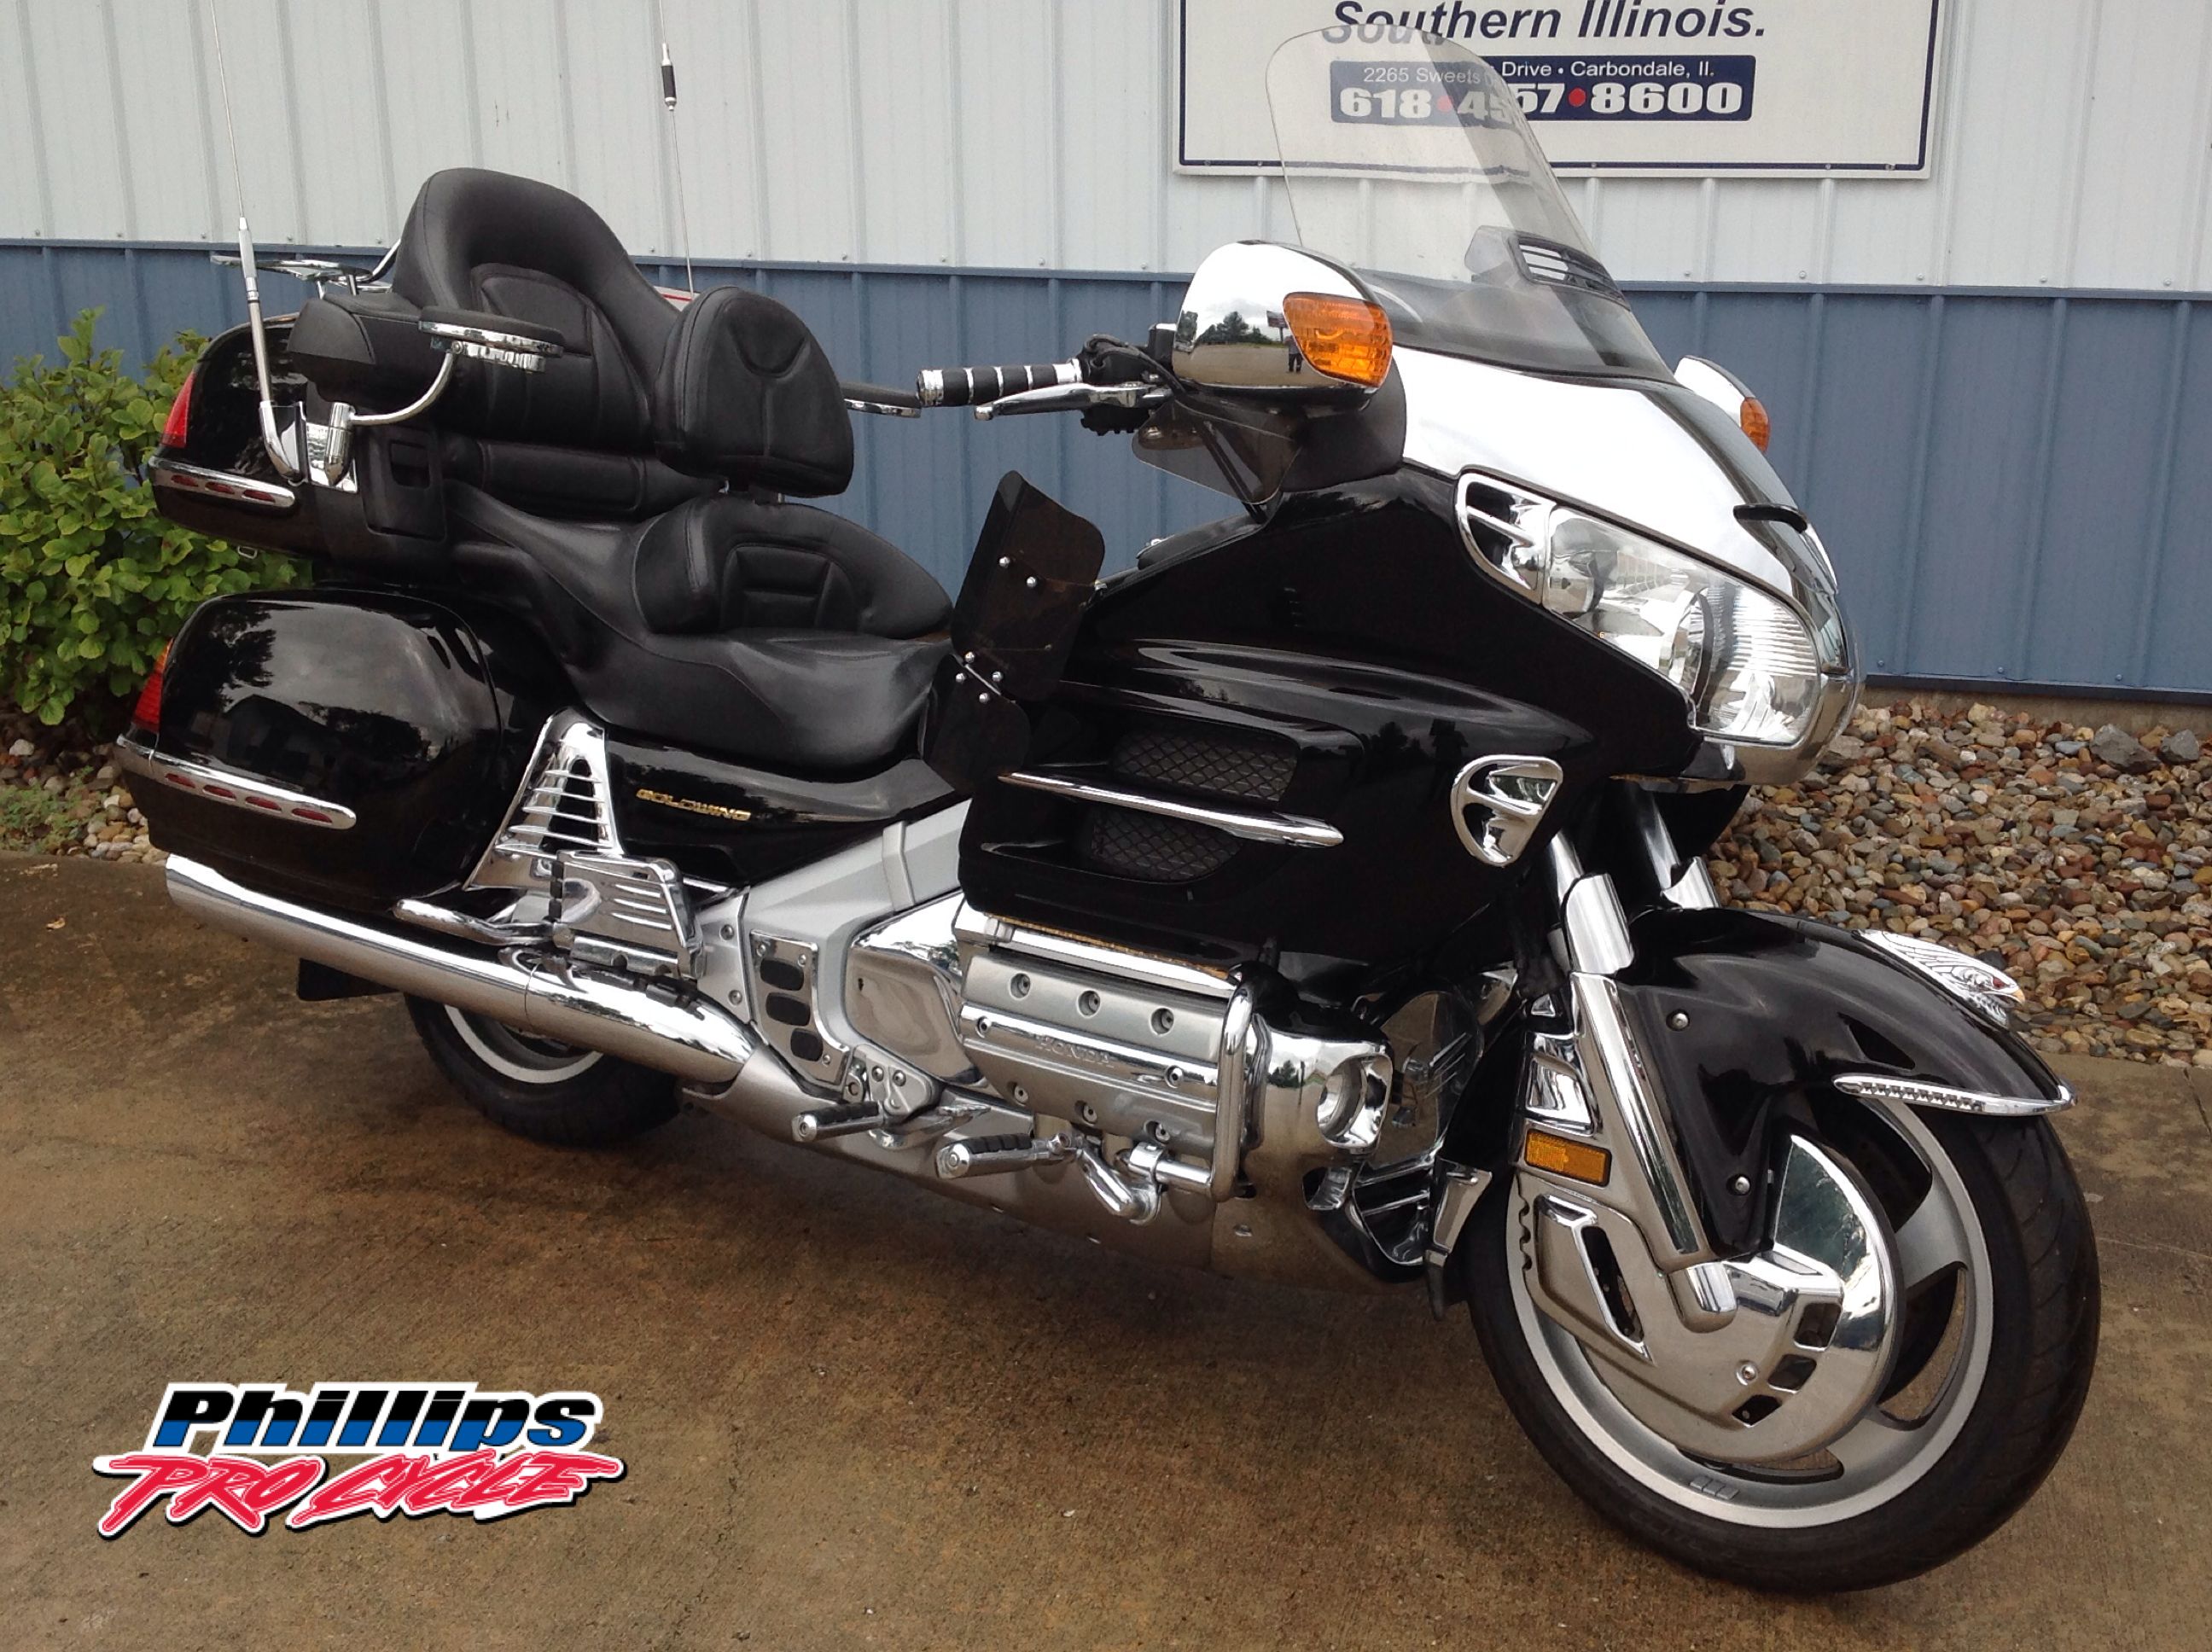 For Sale 2004 Honda Goldwing Gl1800 In Southern Illinois 2003 Img 0166